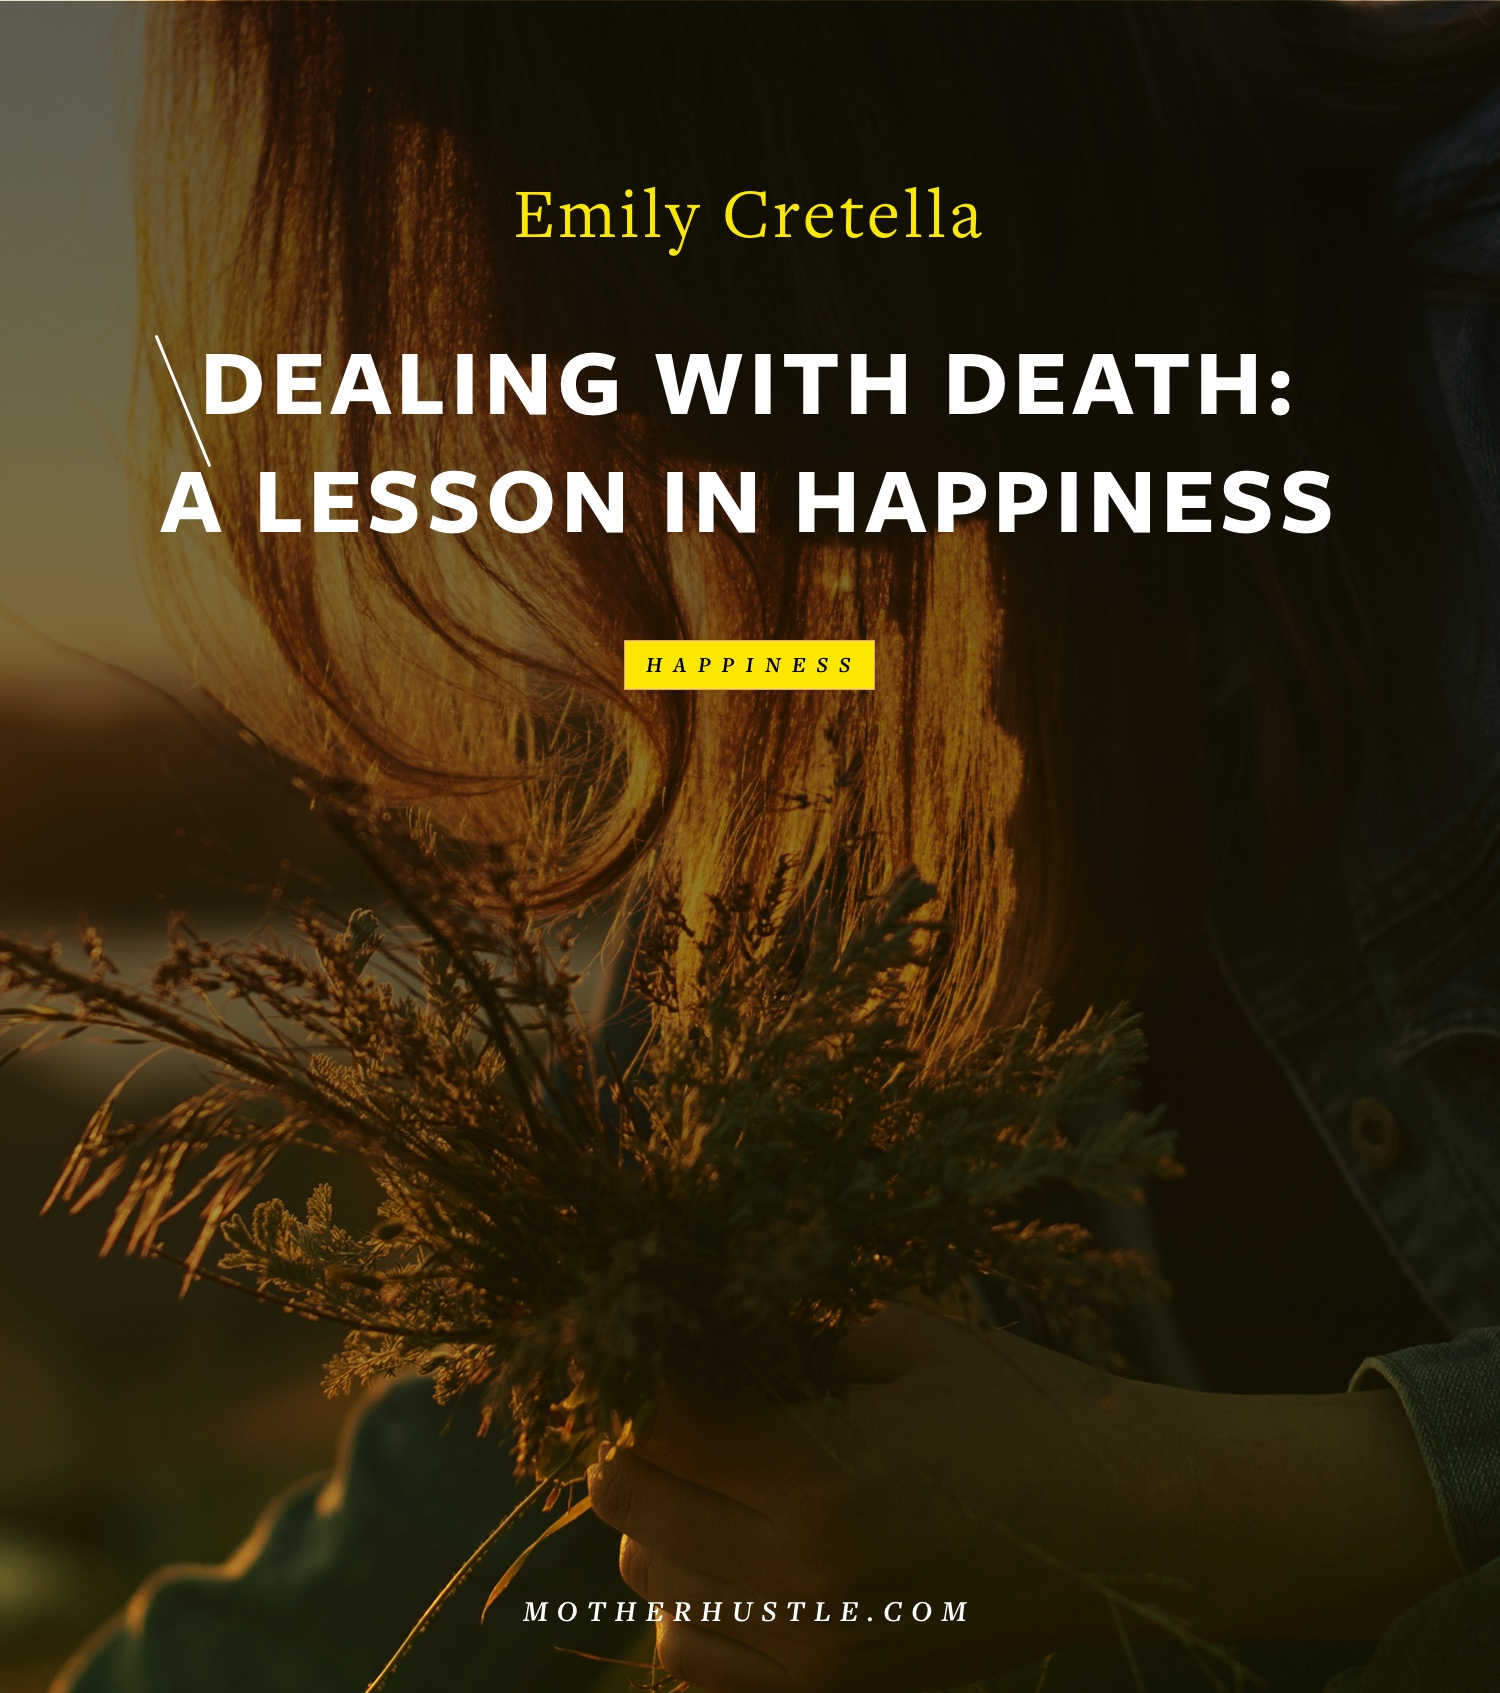 Dealing with Death- A Lesson in Happiness - BY Emily Cretella for MotherHustle